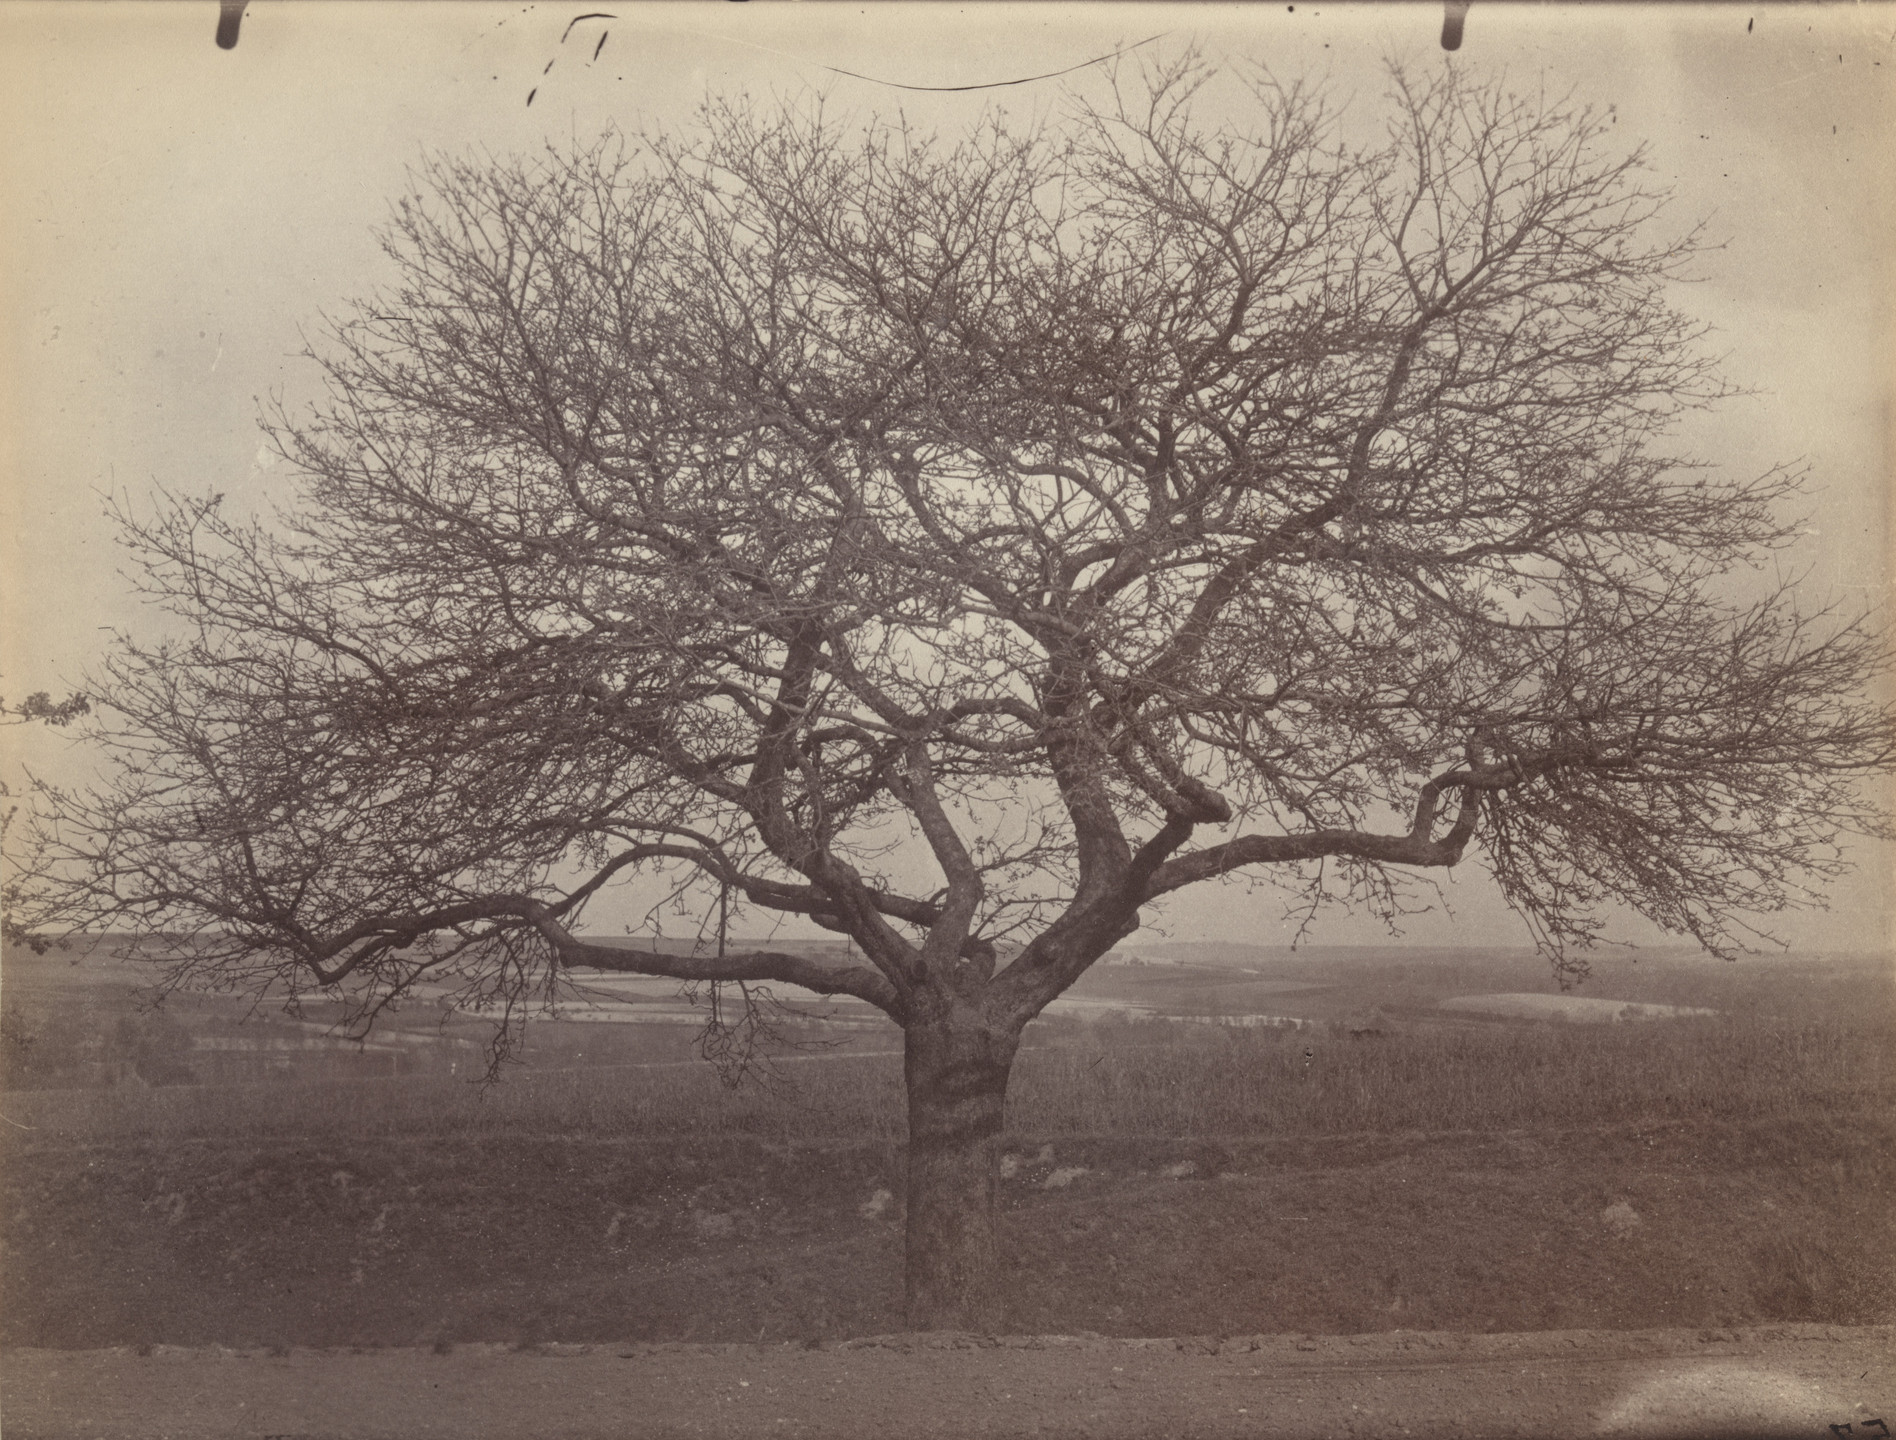 Eugène Atget. Untitled (fruit tree). Before 1900